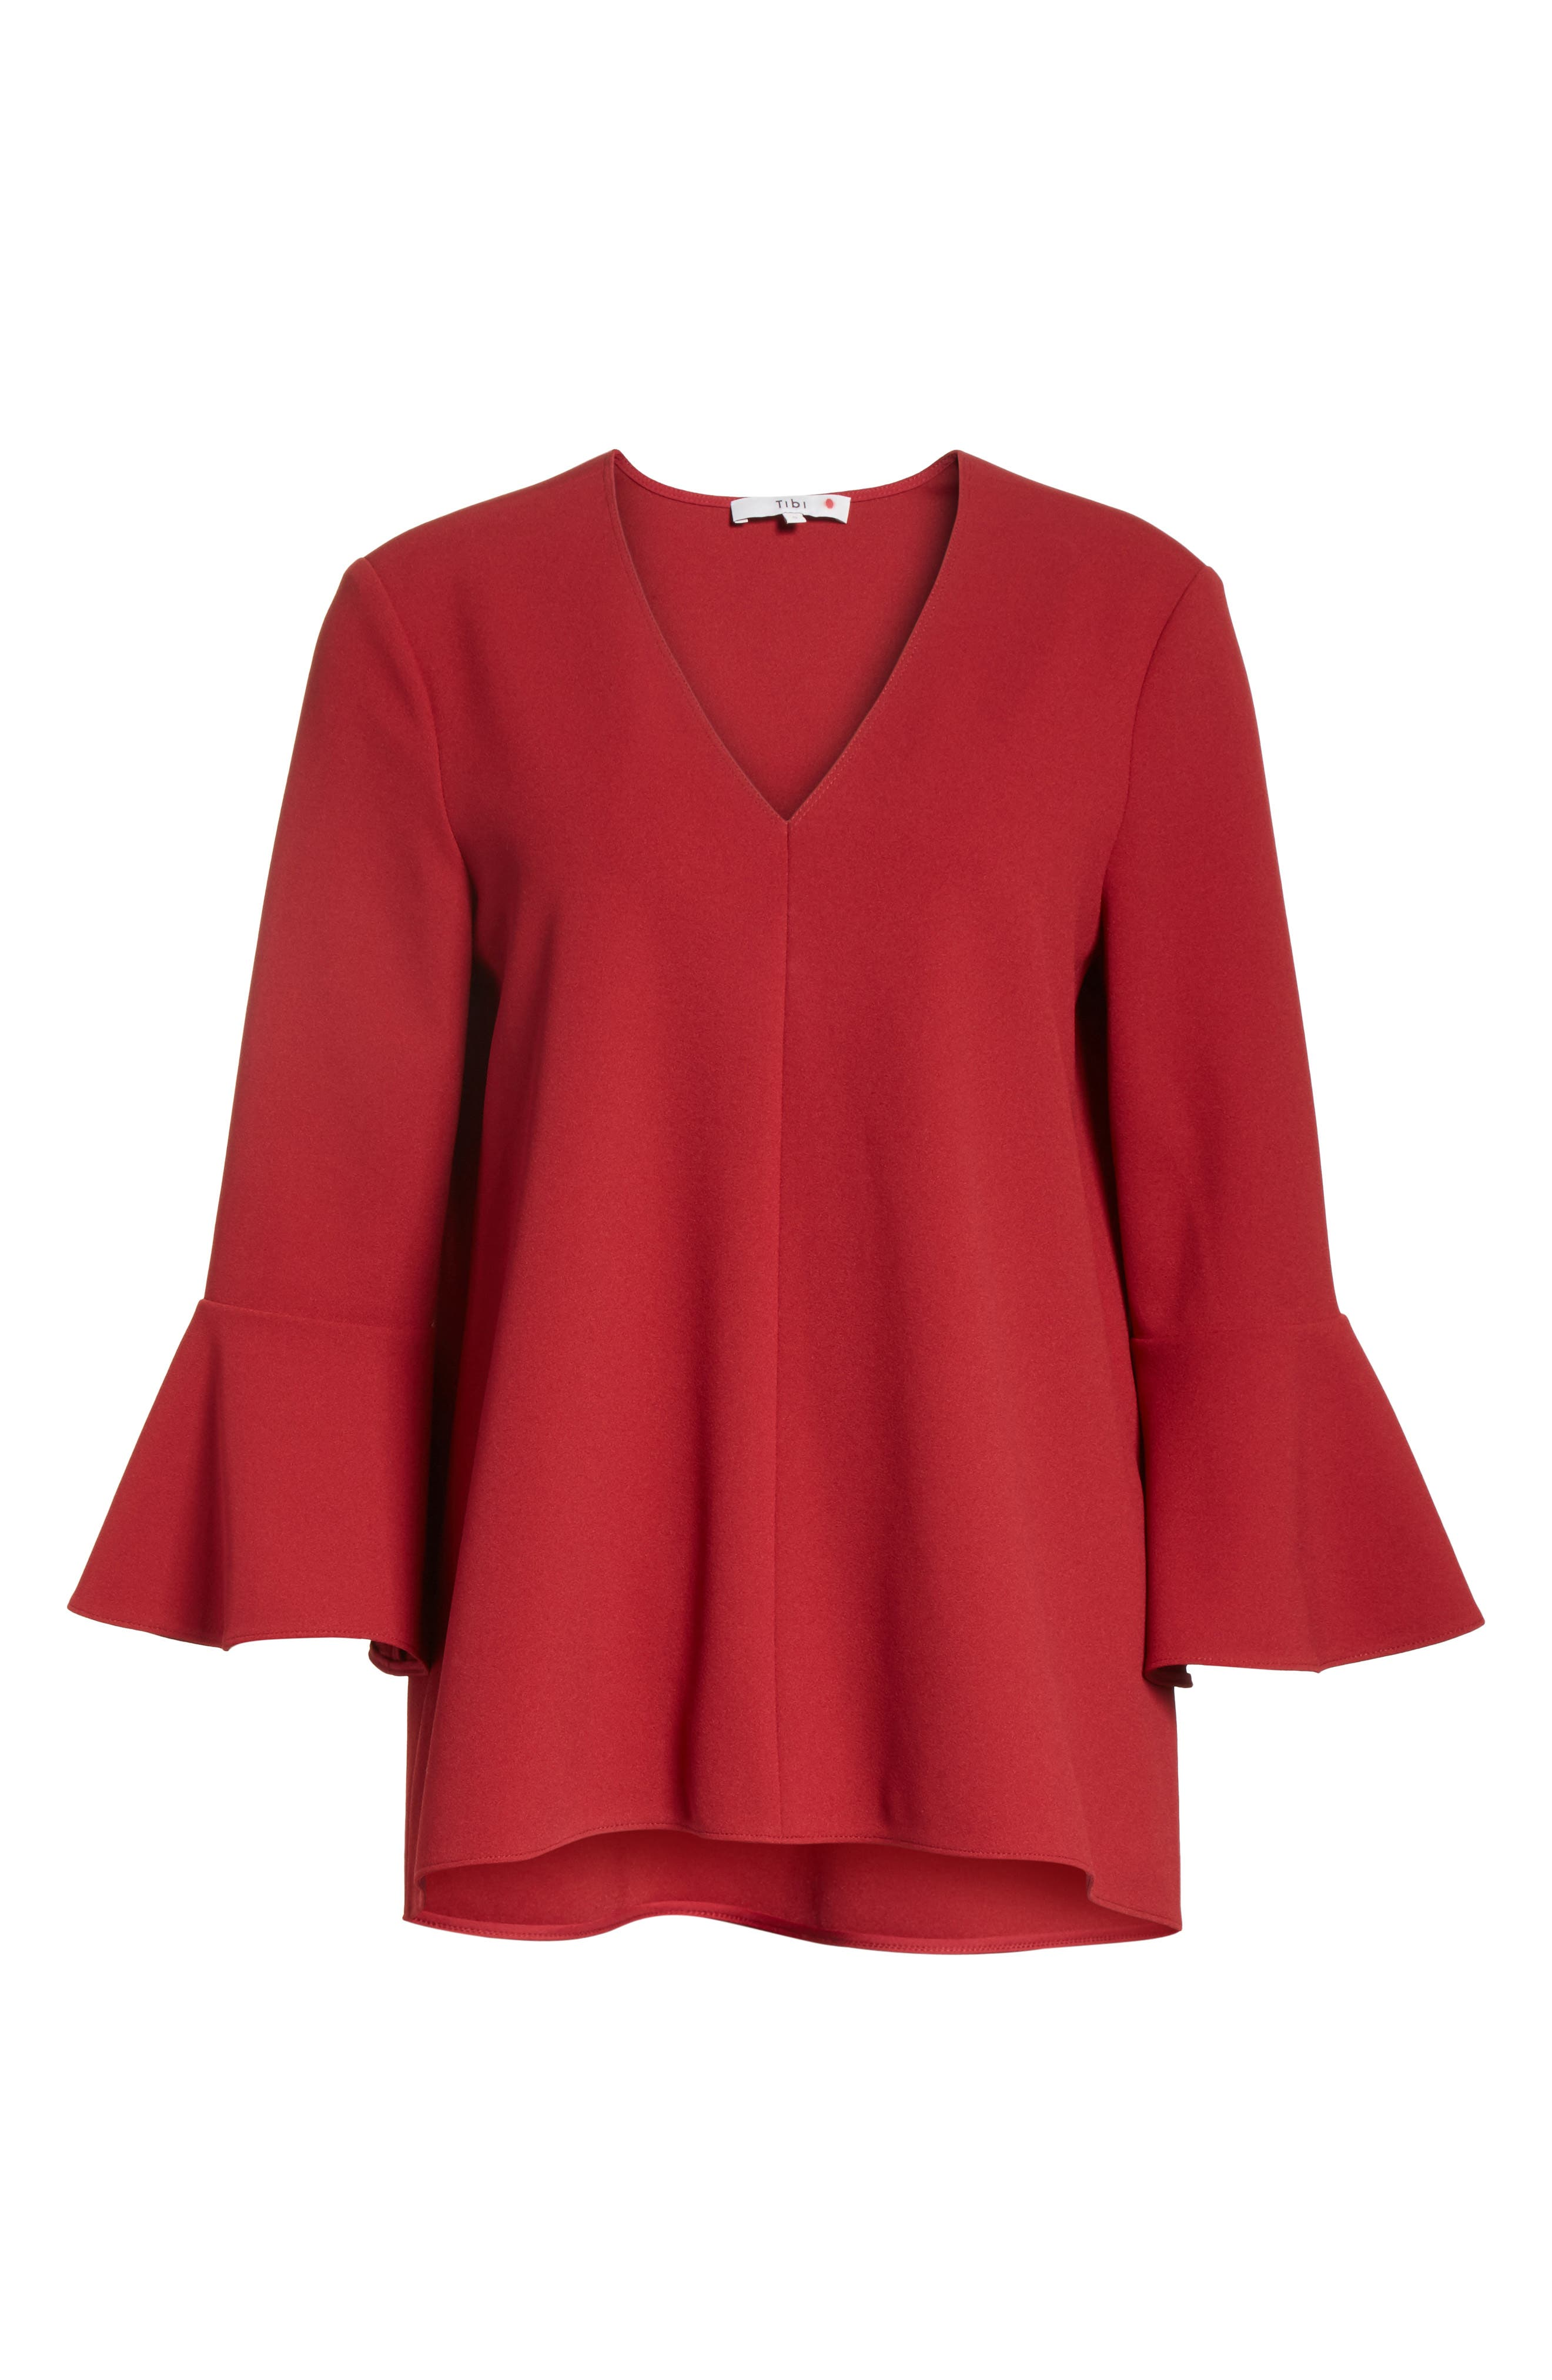 Ruffle Sleeve Stretch Crepe Top,                             Alternate thumbnail 6, color,                             606